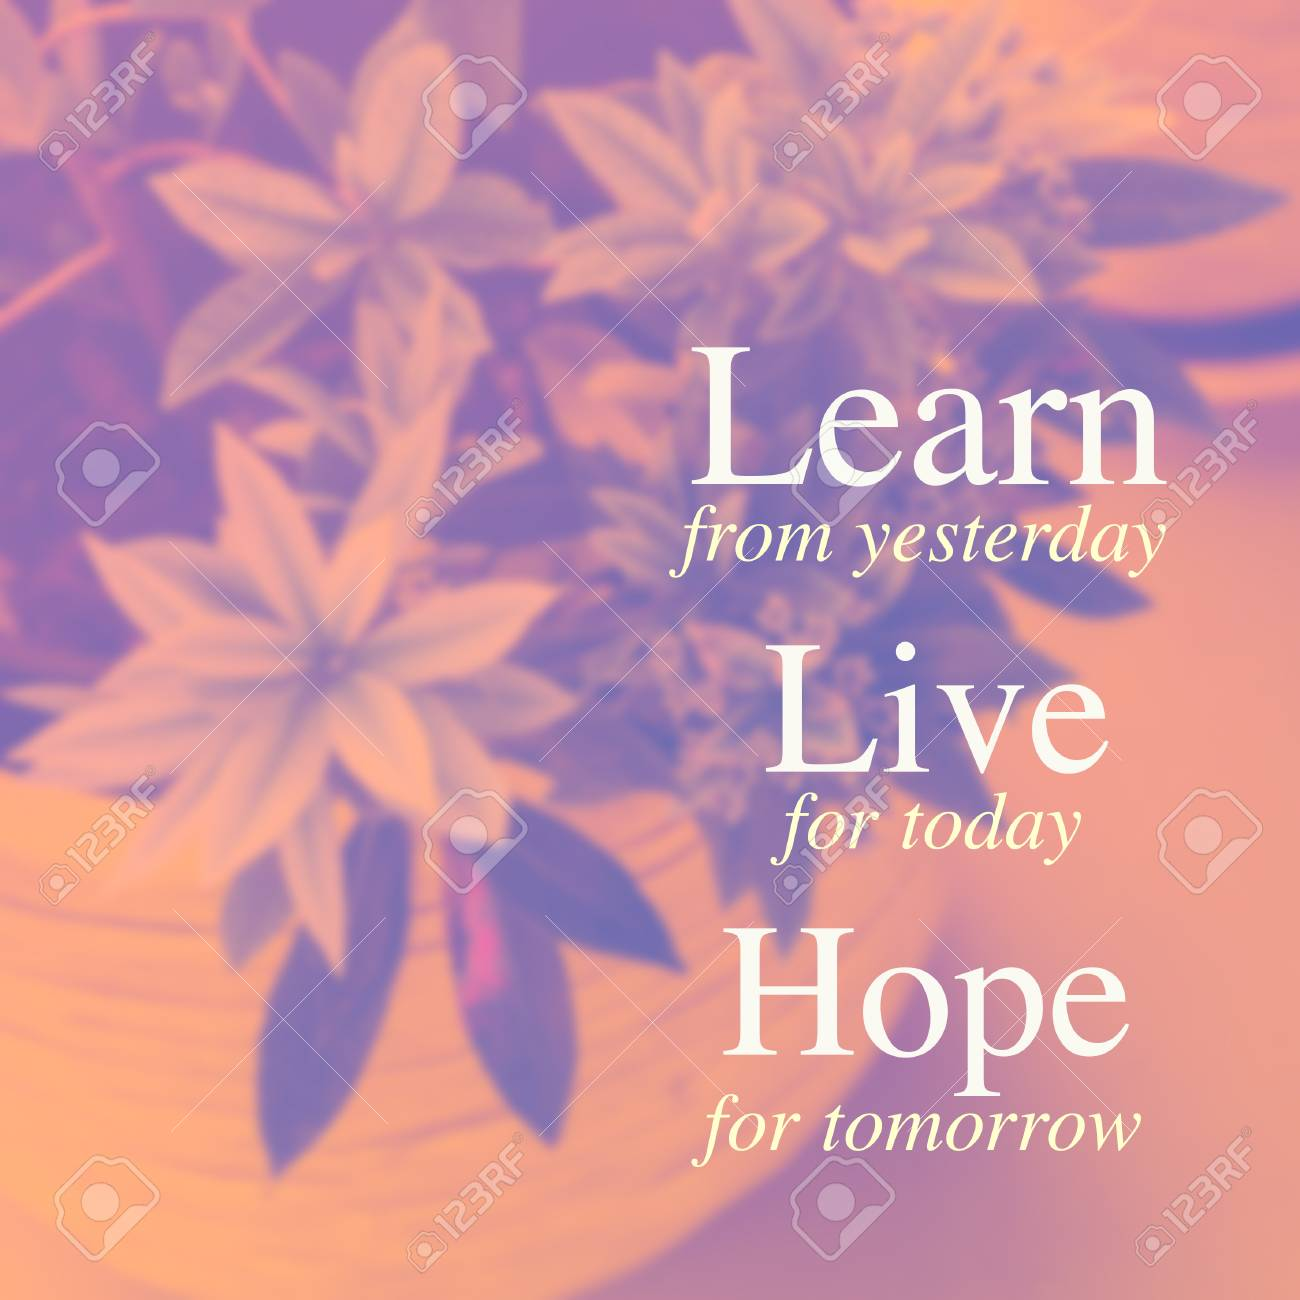 Live For Today Quotes Inspiration Quote Learn From Yesterday Live For Today Hope For